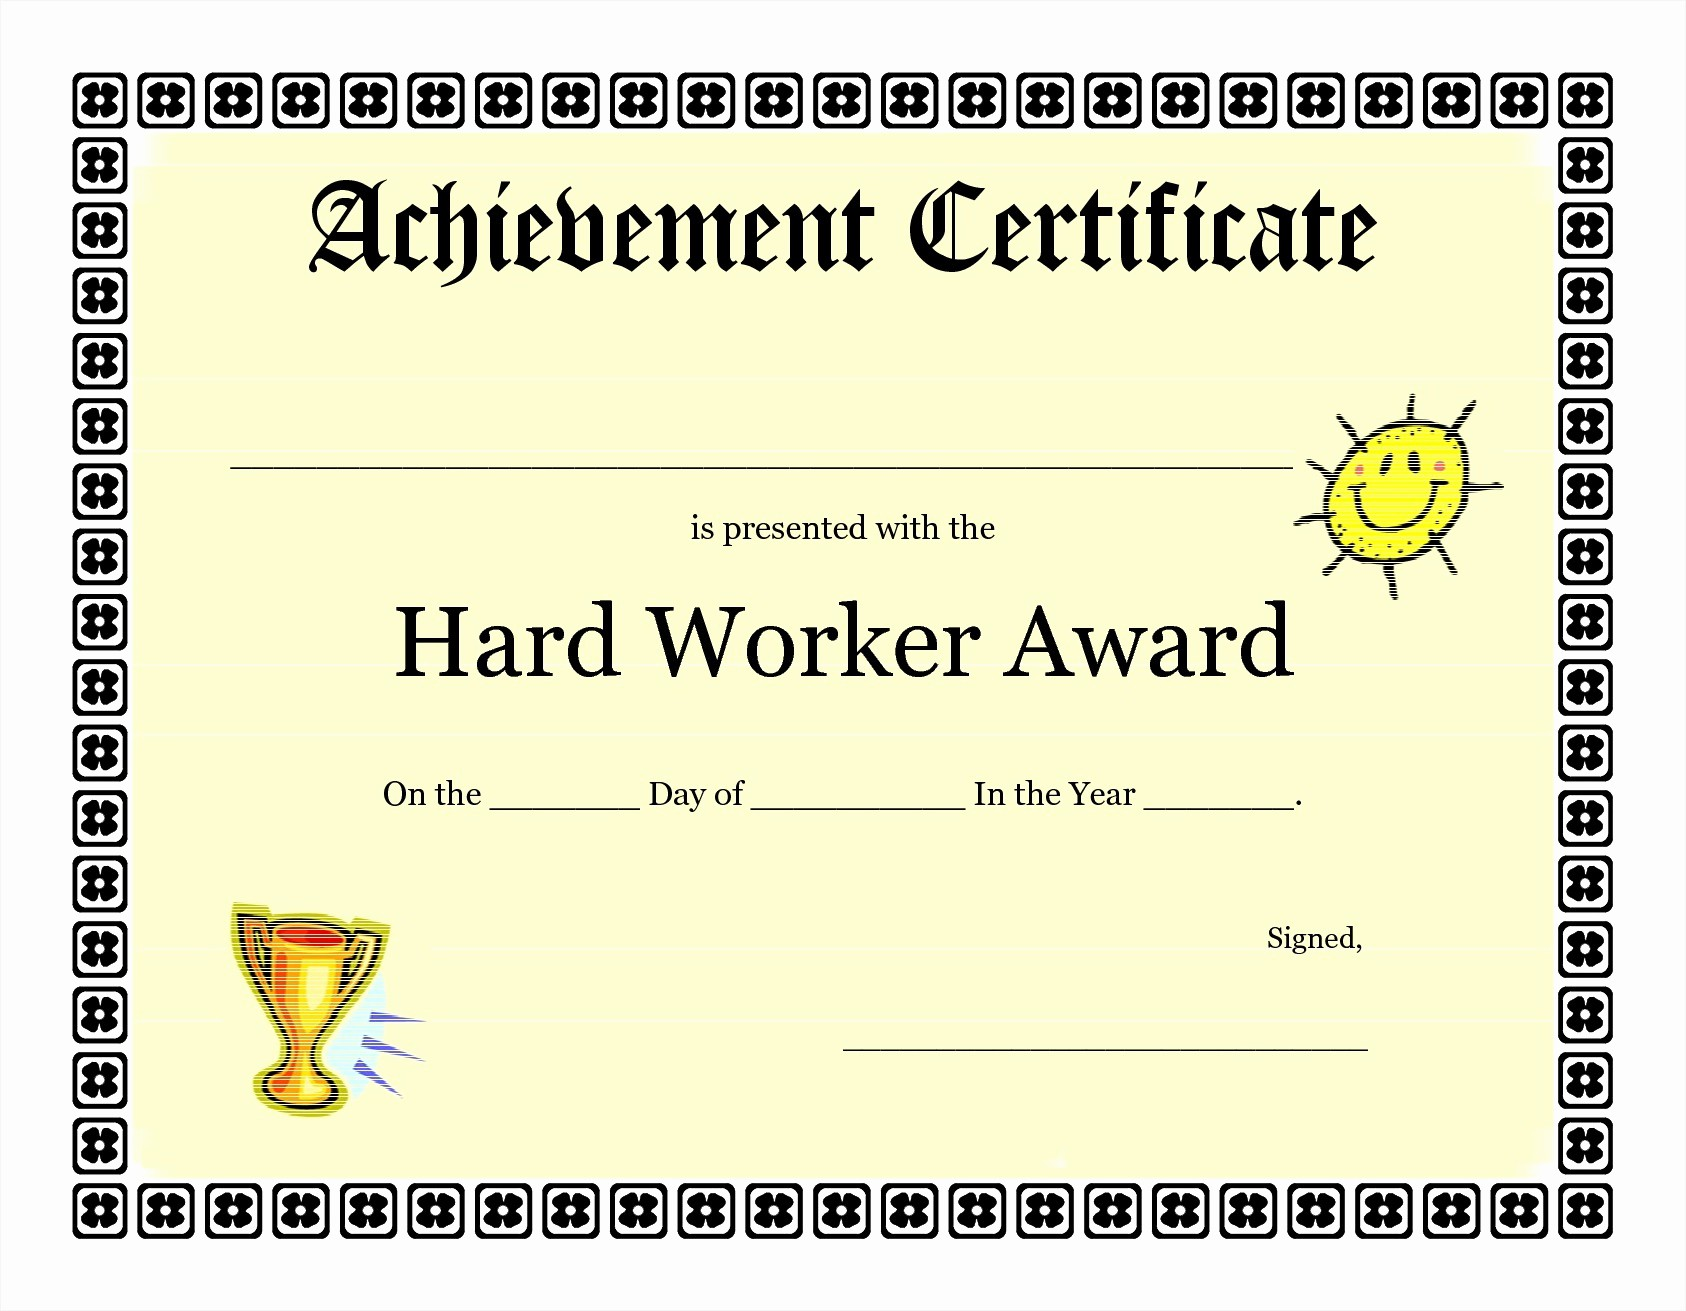 Certificate Of Accomplishment Template Free Fresh Achievement Certificate Templates Free Mughals